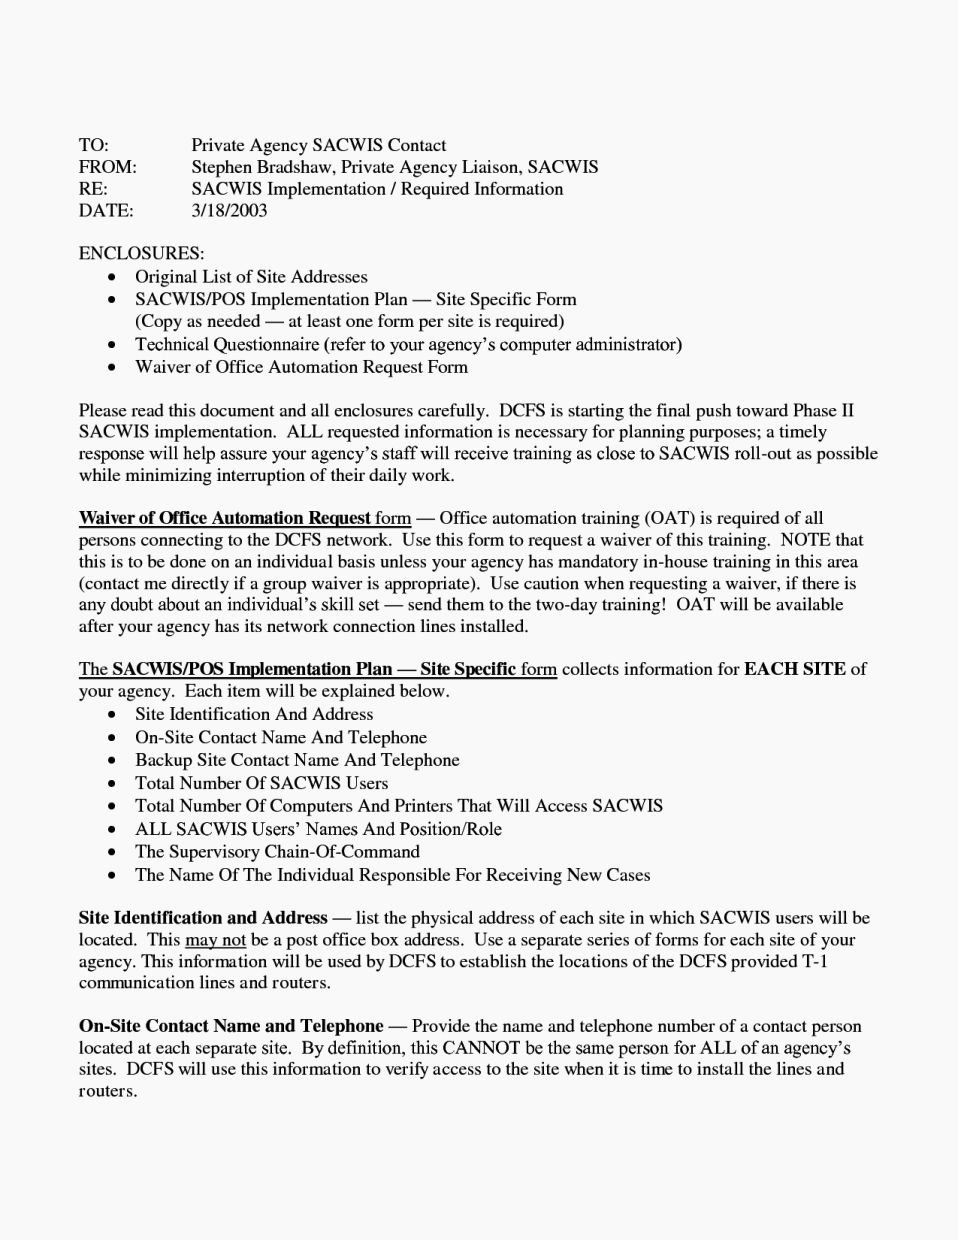 Cover Letter Template Doc Luxury Cover Letter Sample Doc Resume Template